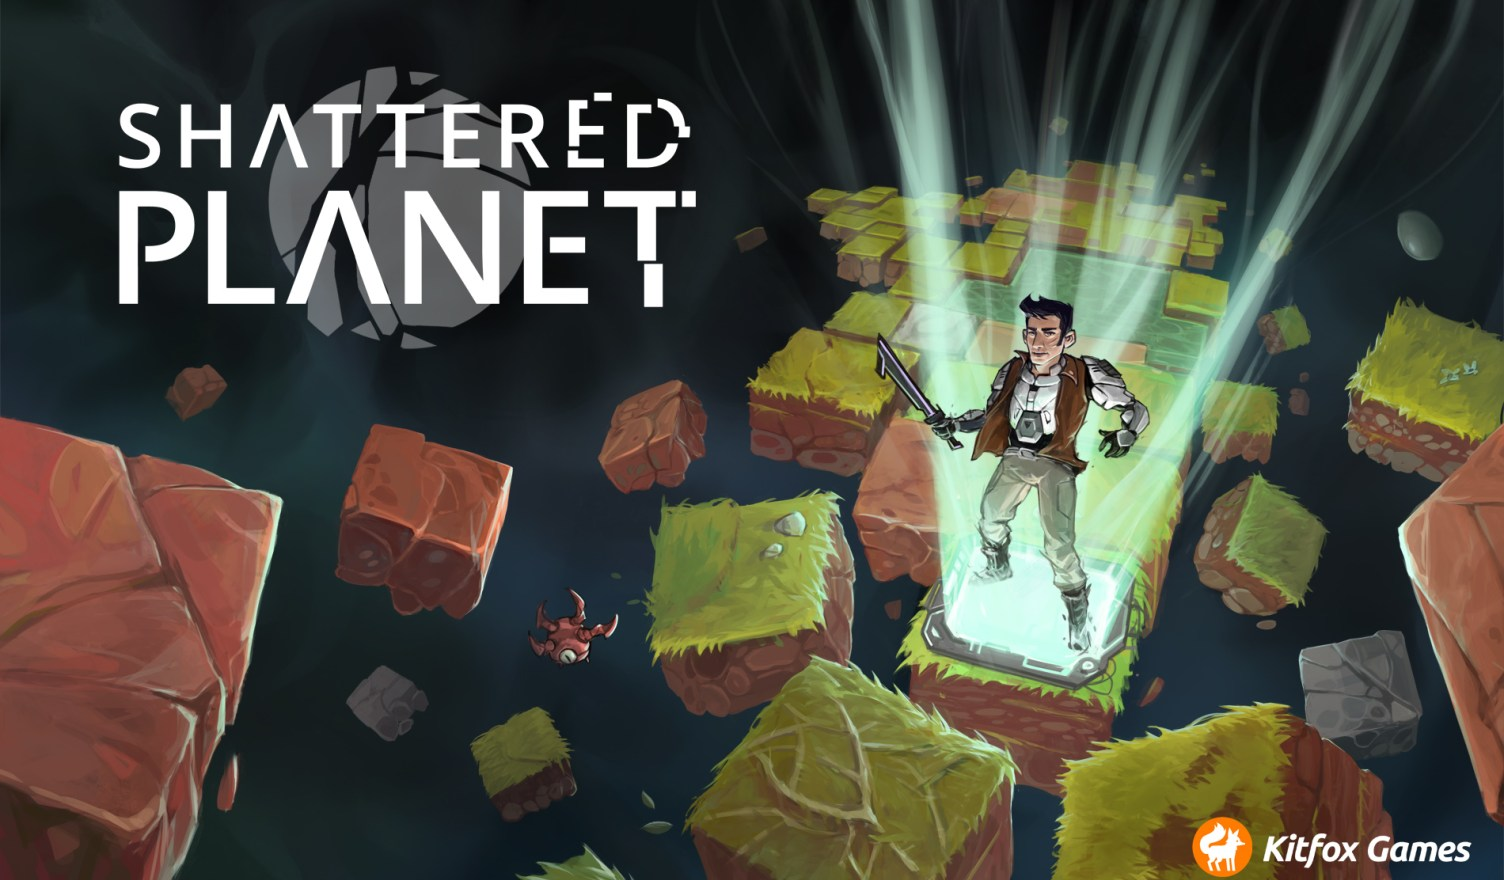 Shattered Planet